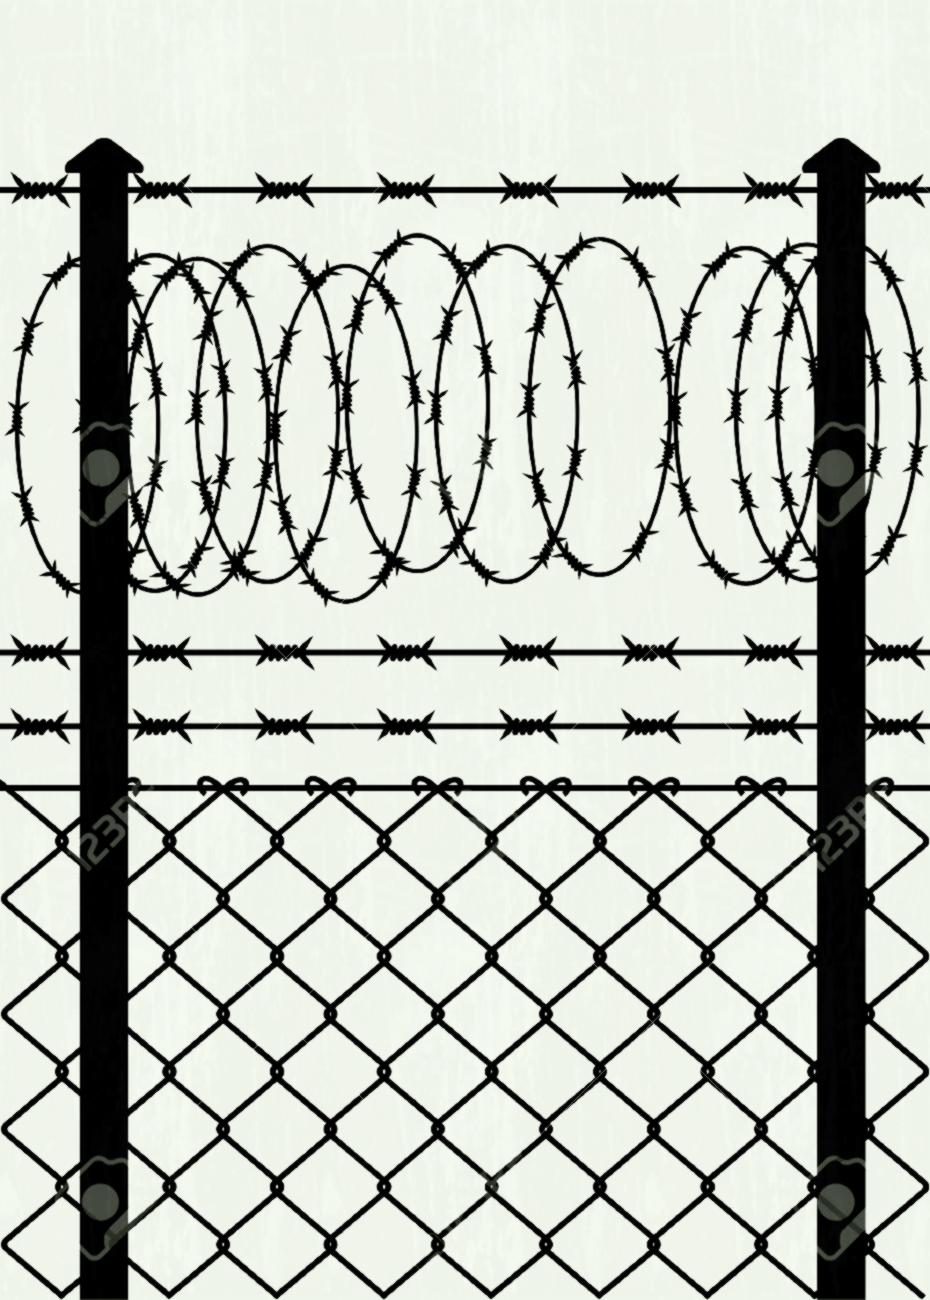 930x1300 Prison Privacy Metal Fence With Barbed Wire Vector Image